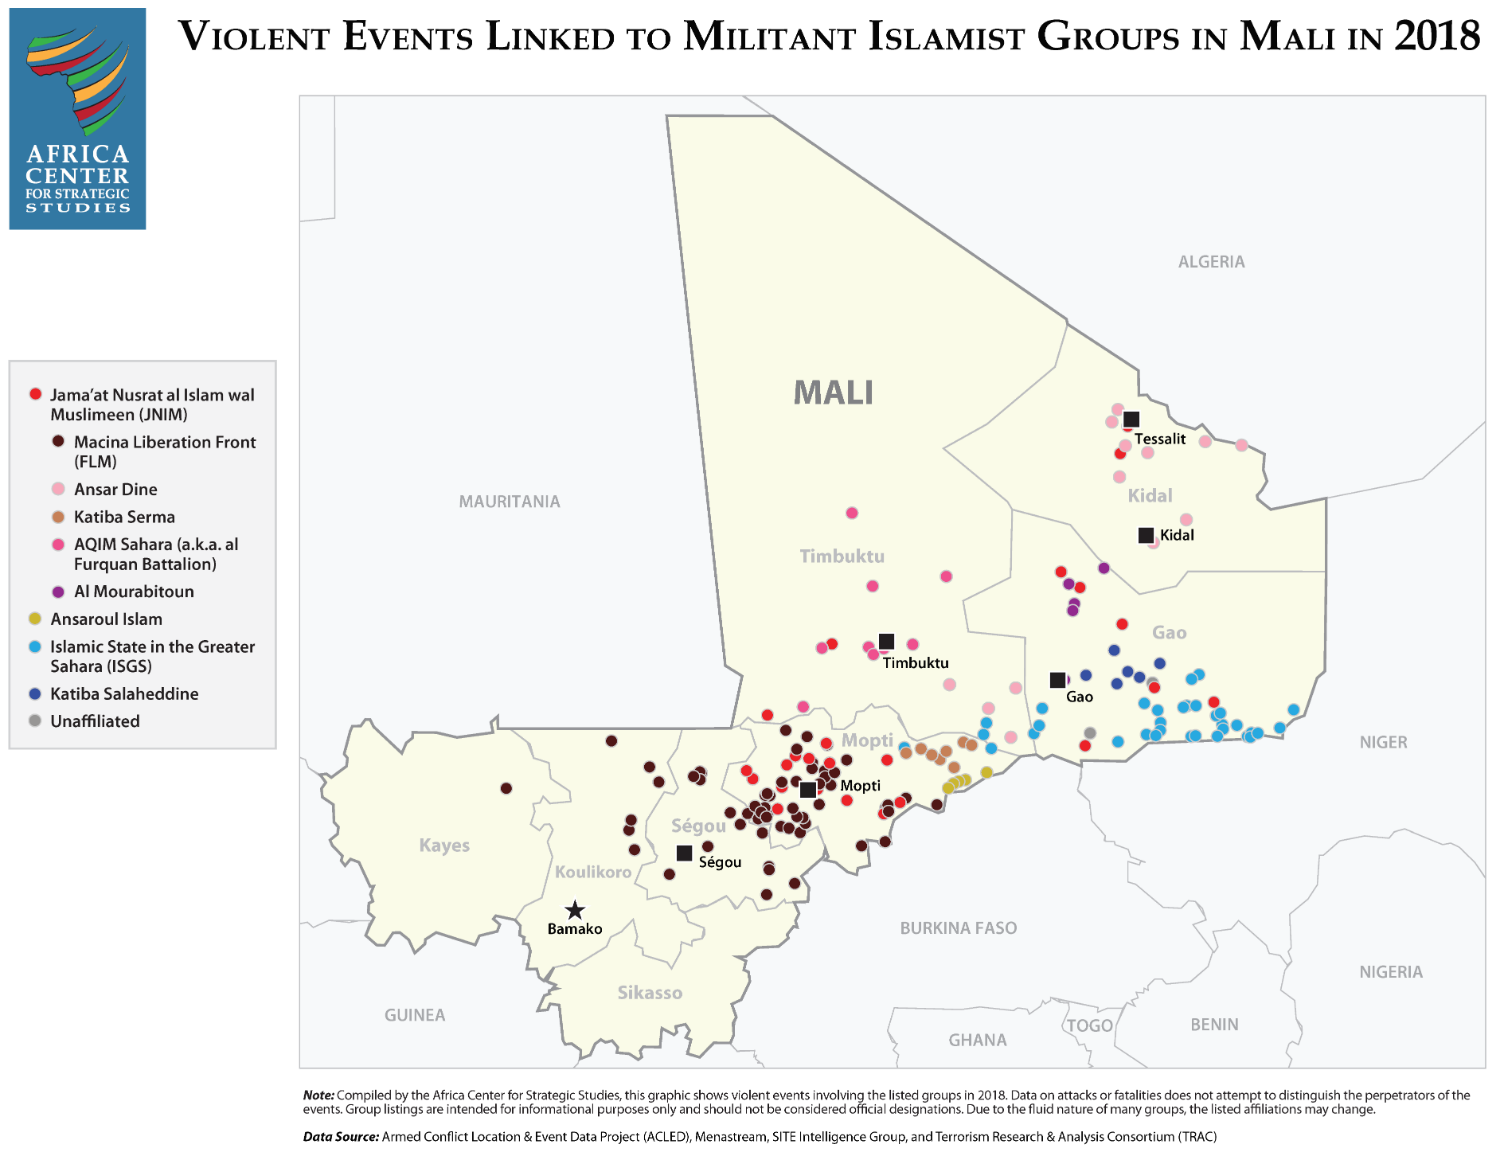 Violent Events Linked to Militant Islamist Groups in Mali in 2018